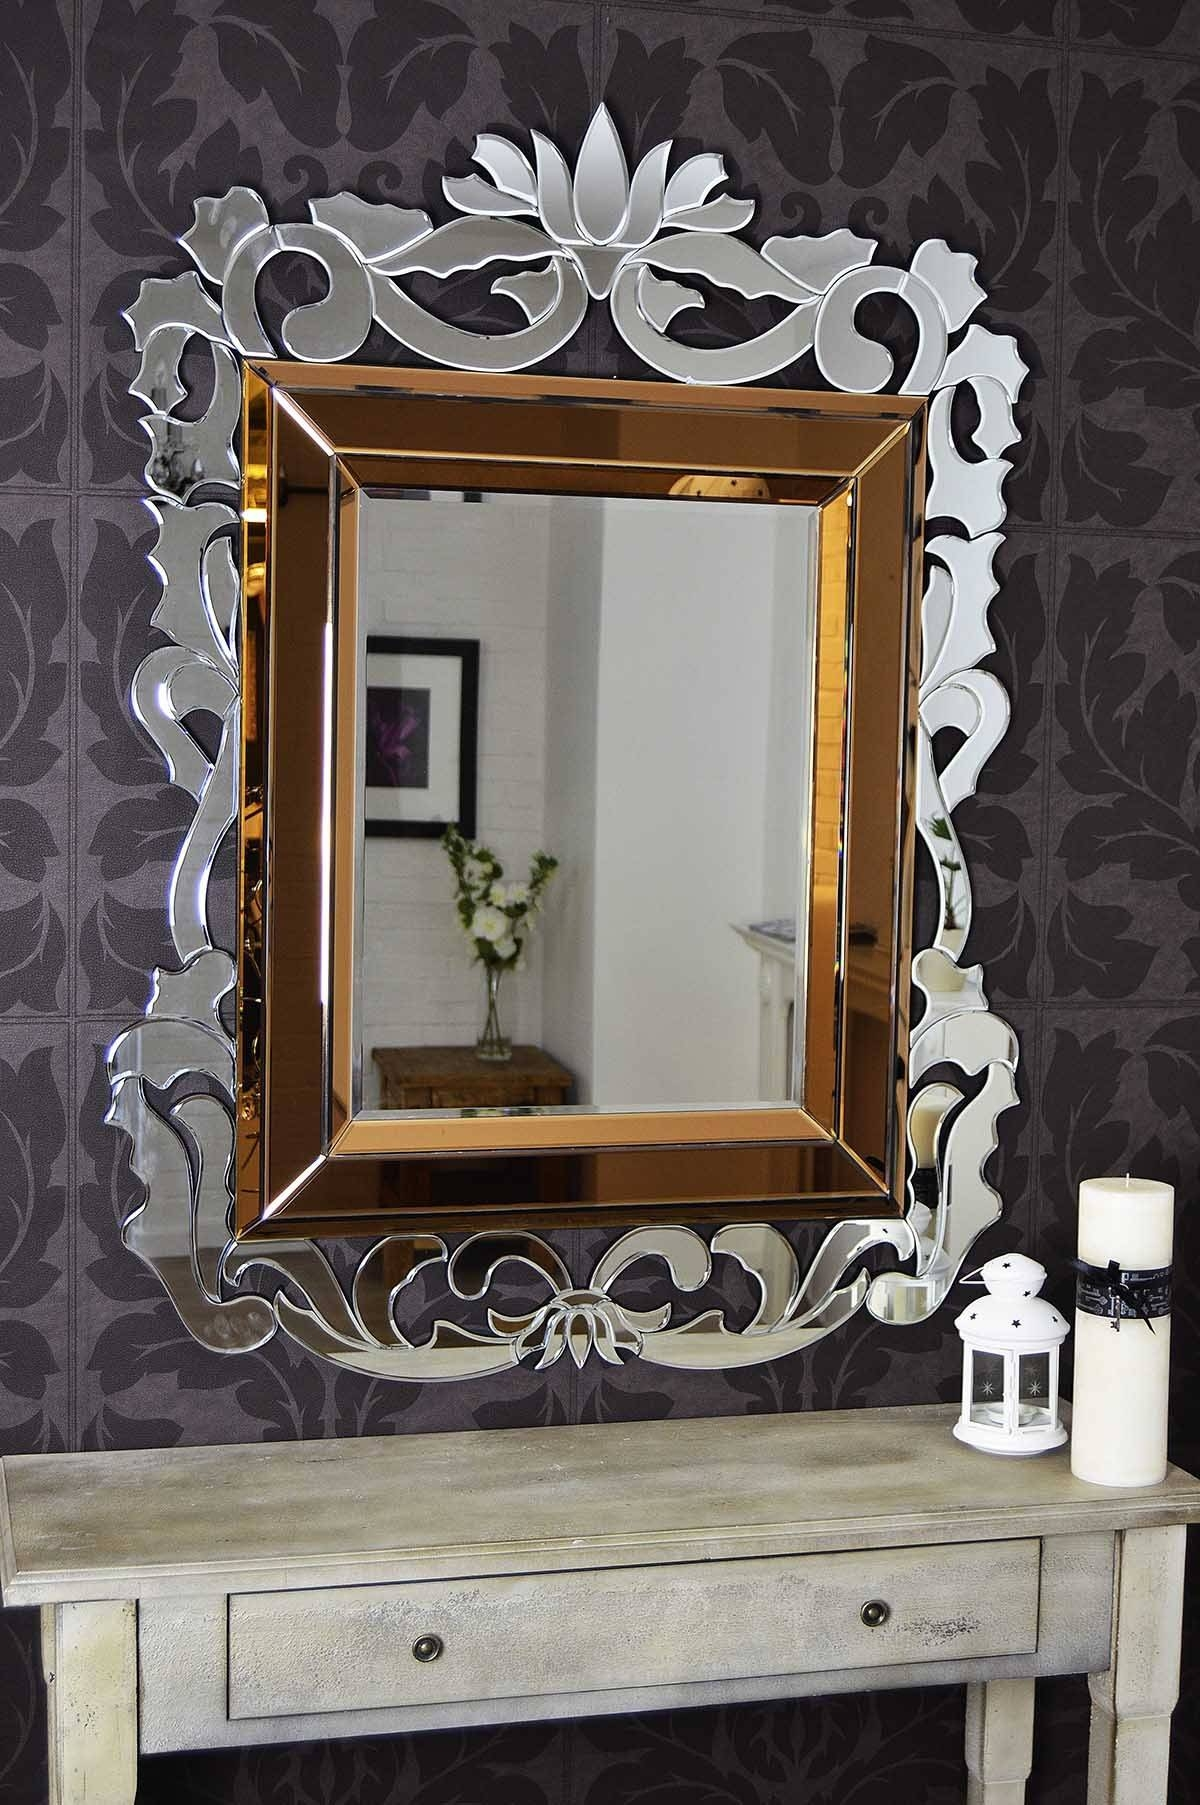 French Baroque Style Bronze Venetian Wall Mirror-Jh004 pertaining to Baroque Style Mirrors (Image 14 of 25)